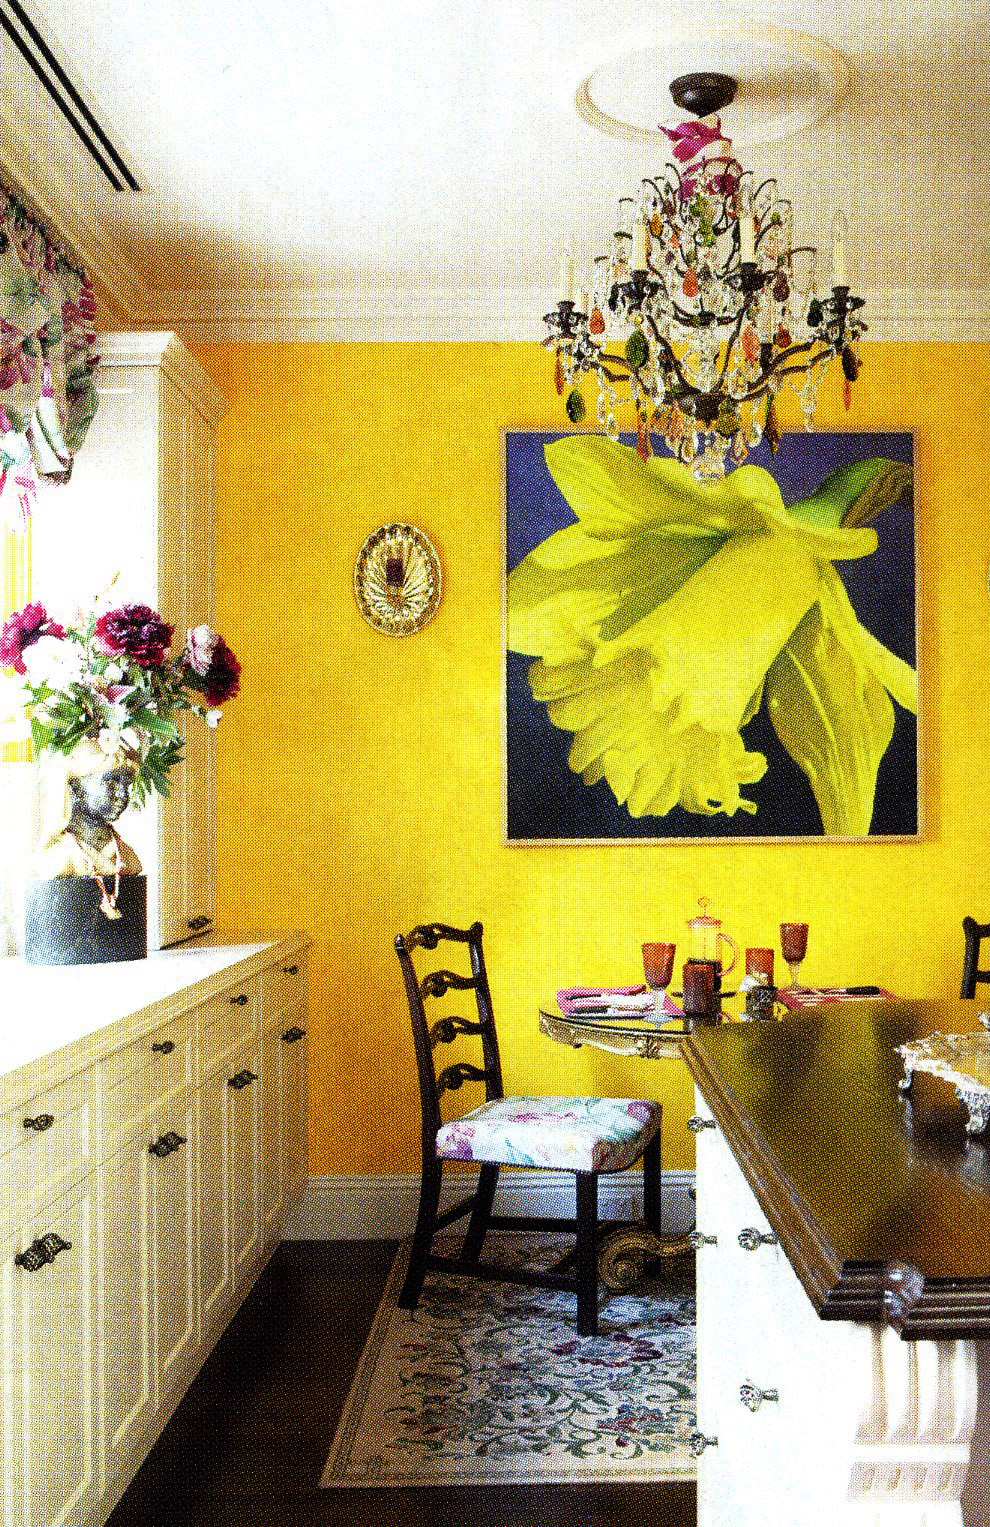 'Sunnyside'hanging in Lady Susan Renouf's kitchen/dining area